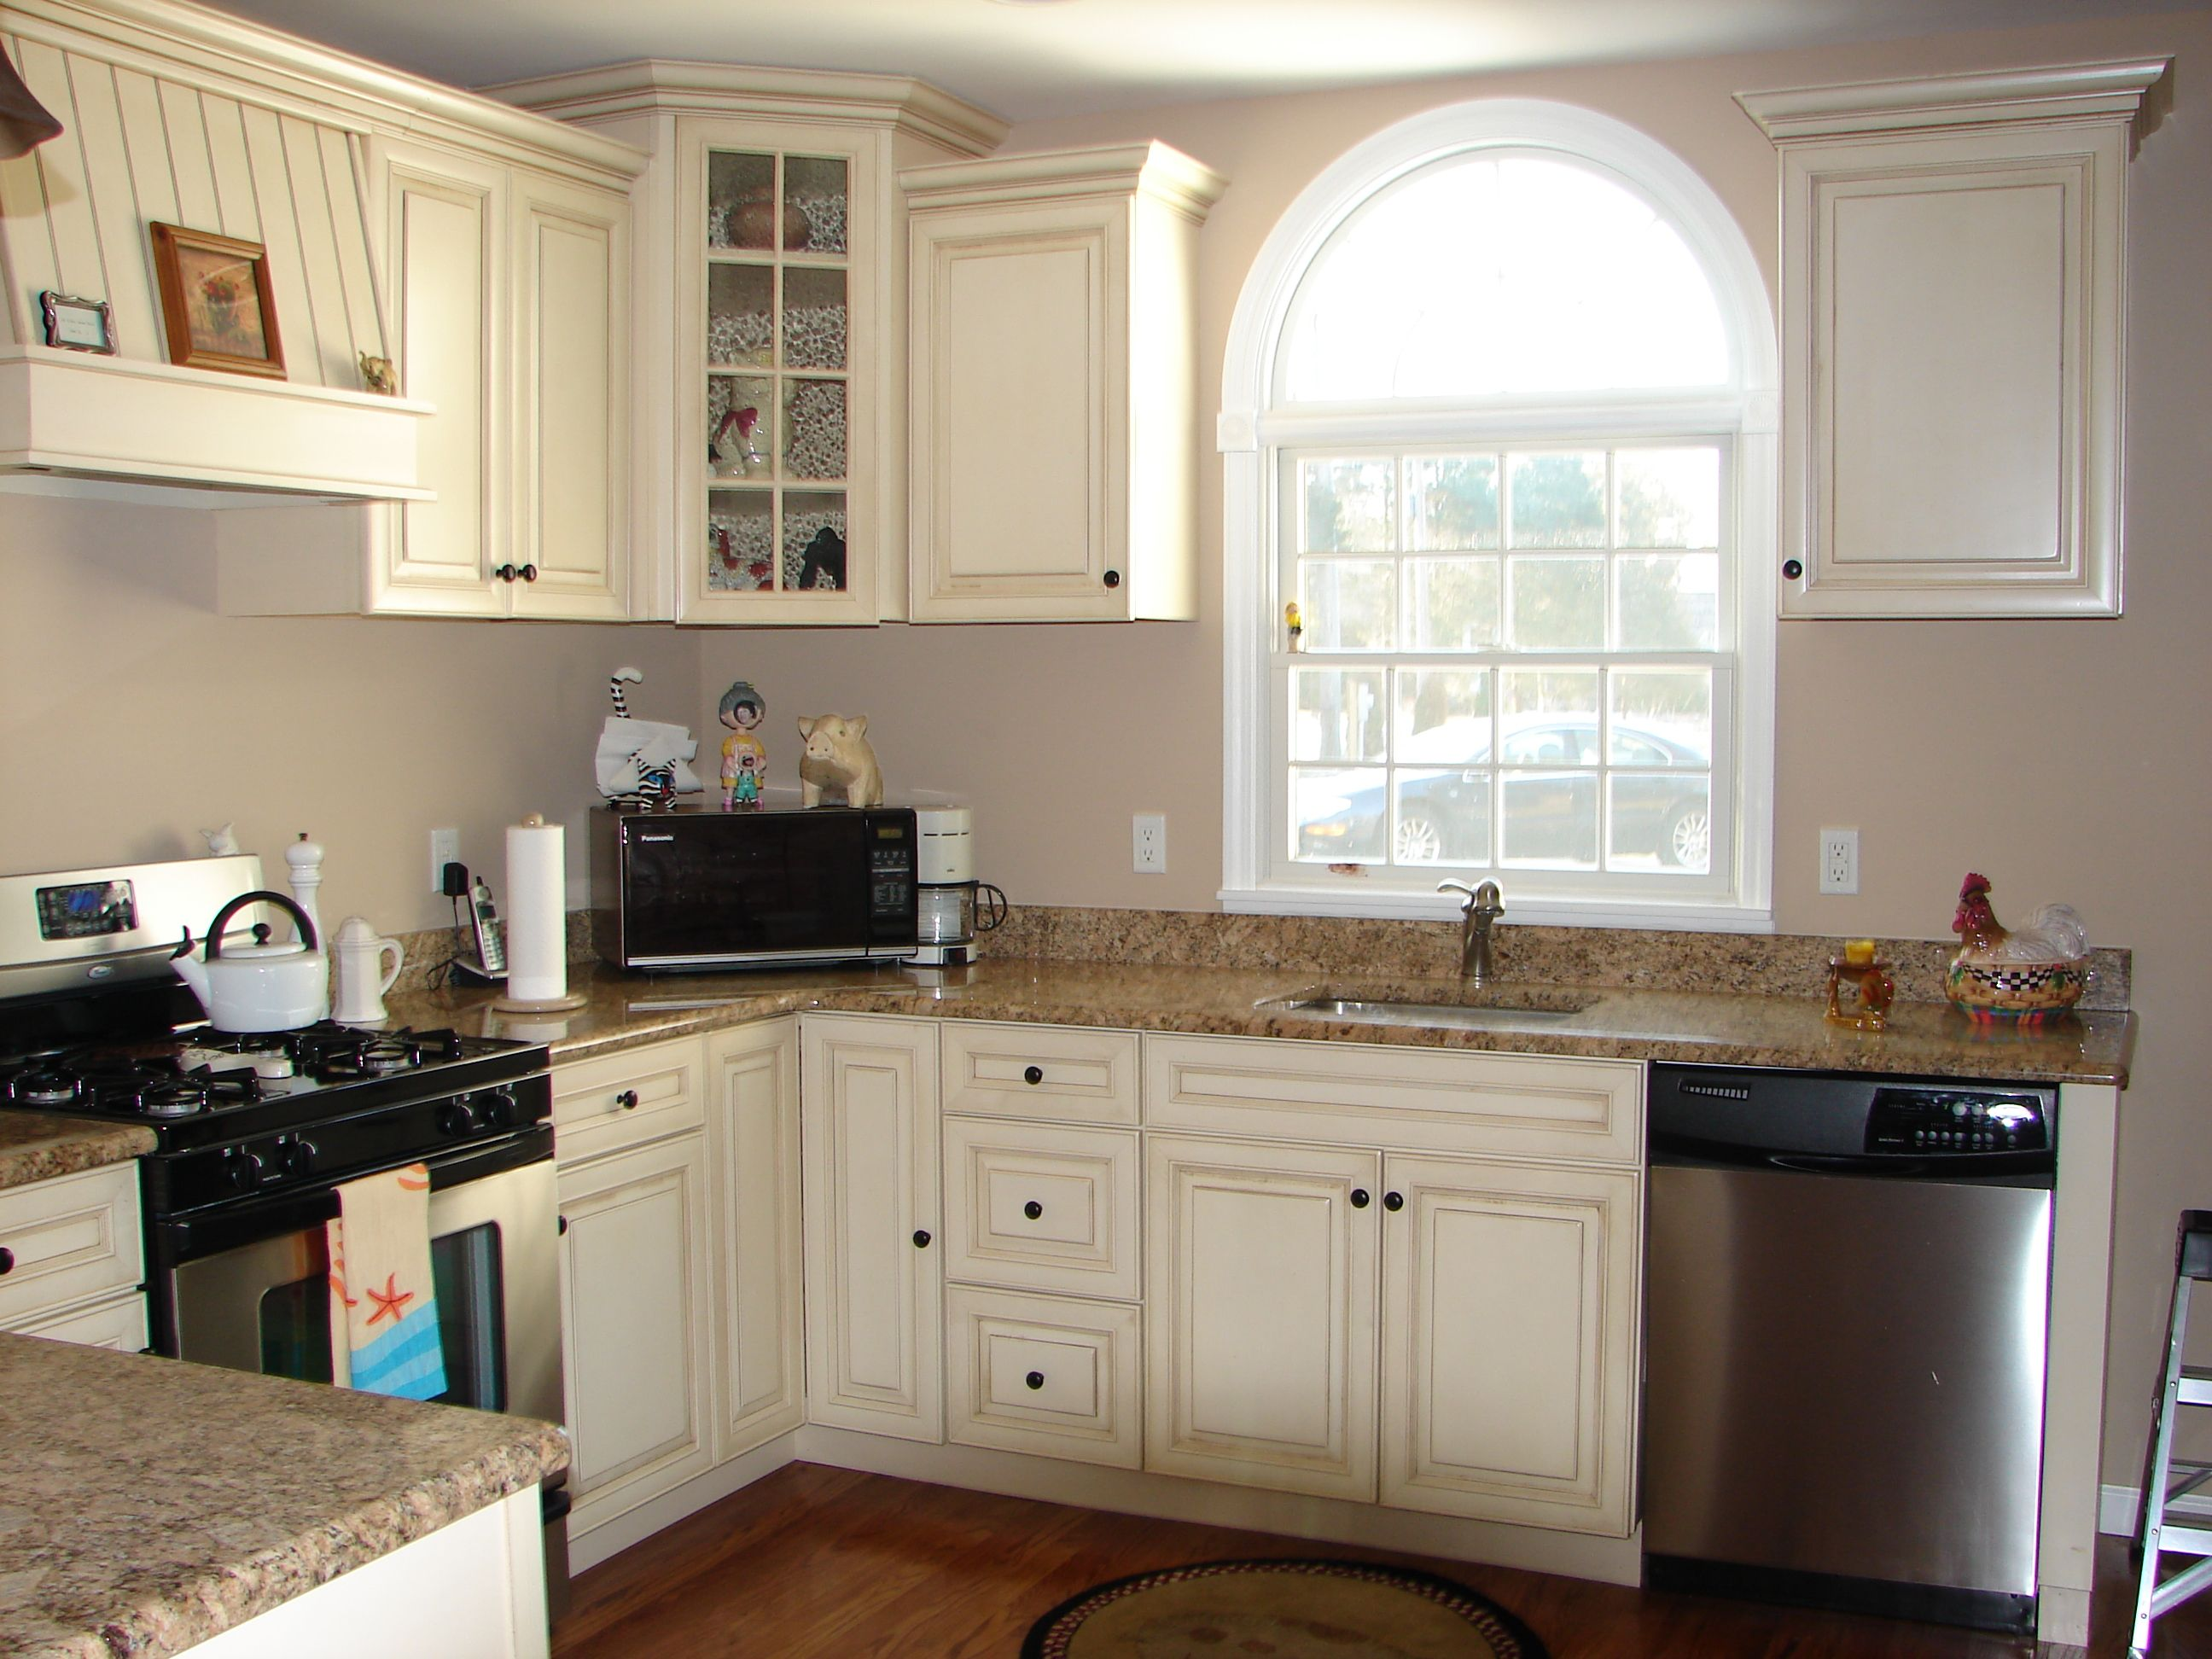 Merveilleux Gray Walls With Distressed Cream Cabinets, And Pretty Close Match To  Granite Countertops....PERFECT